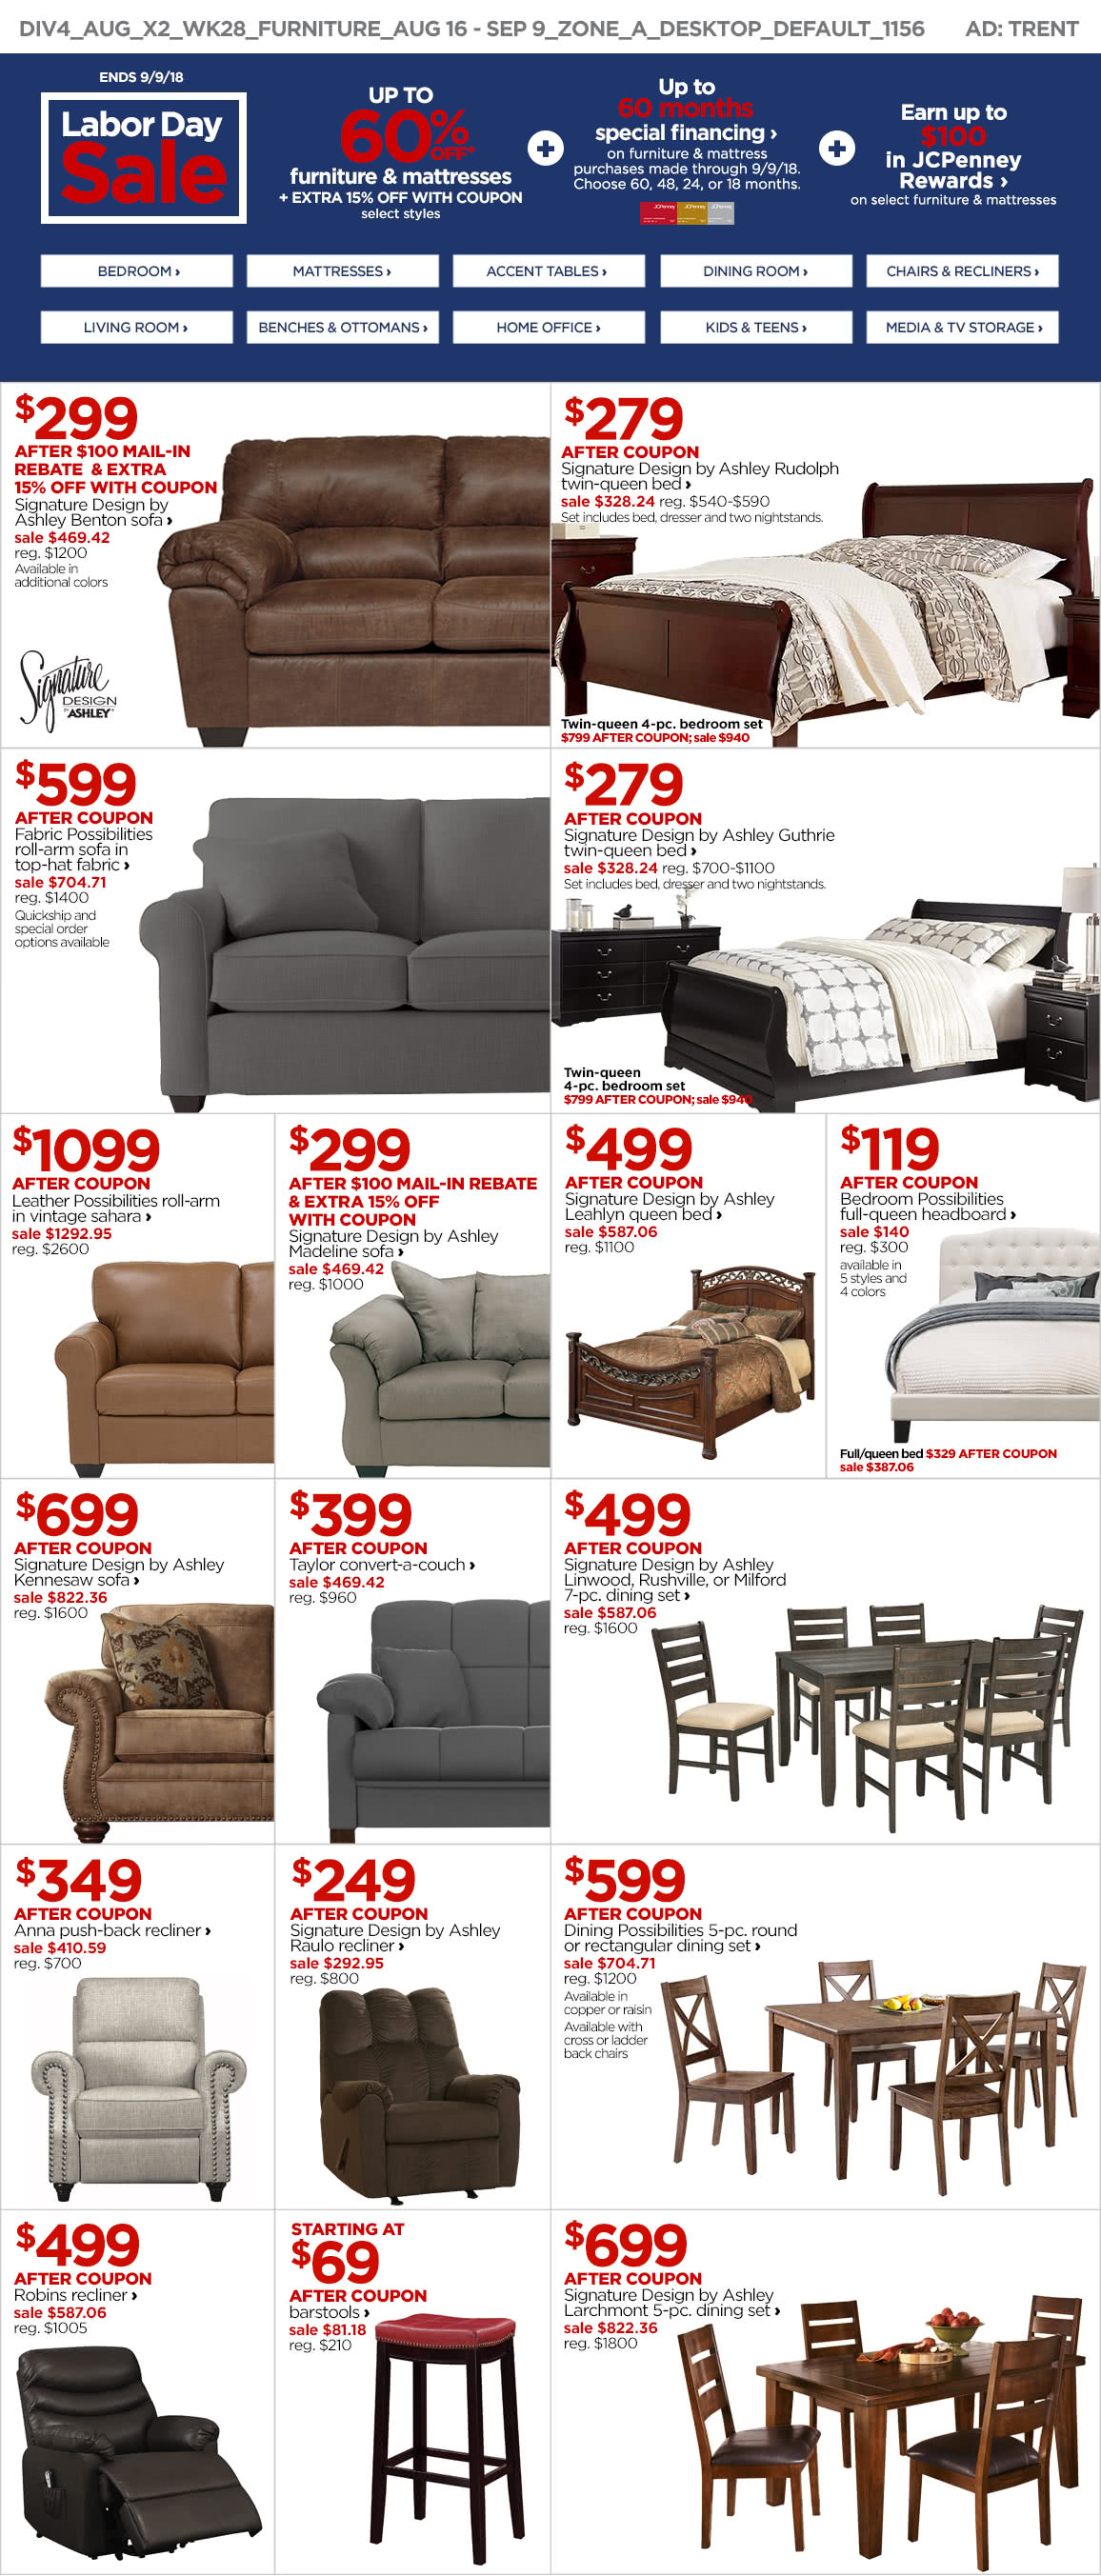 Up to 60% Off Furniture and Mattresses